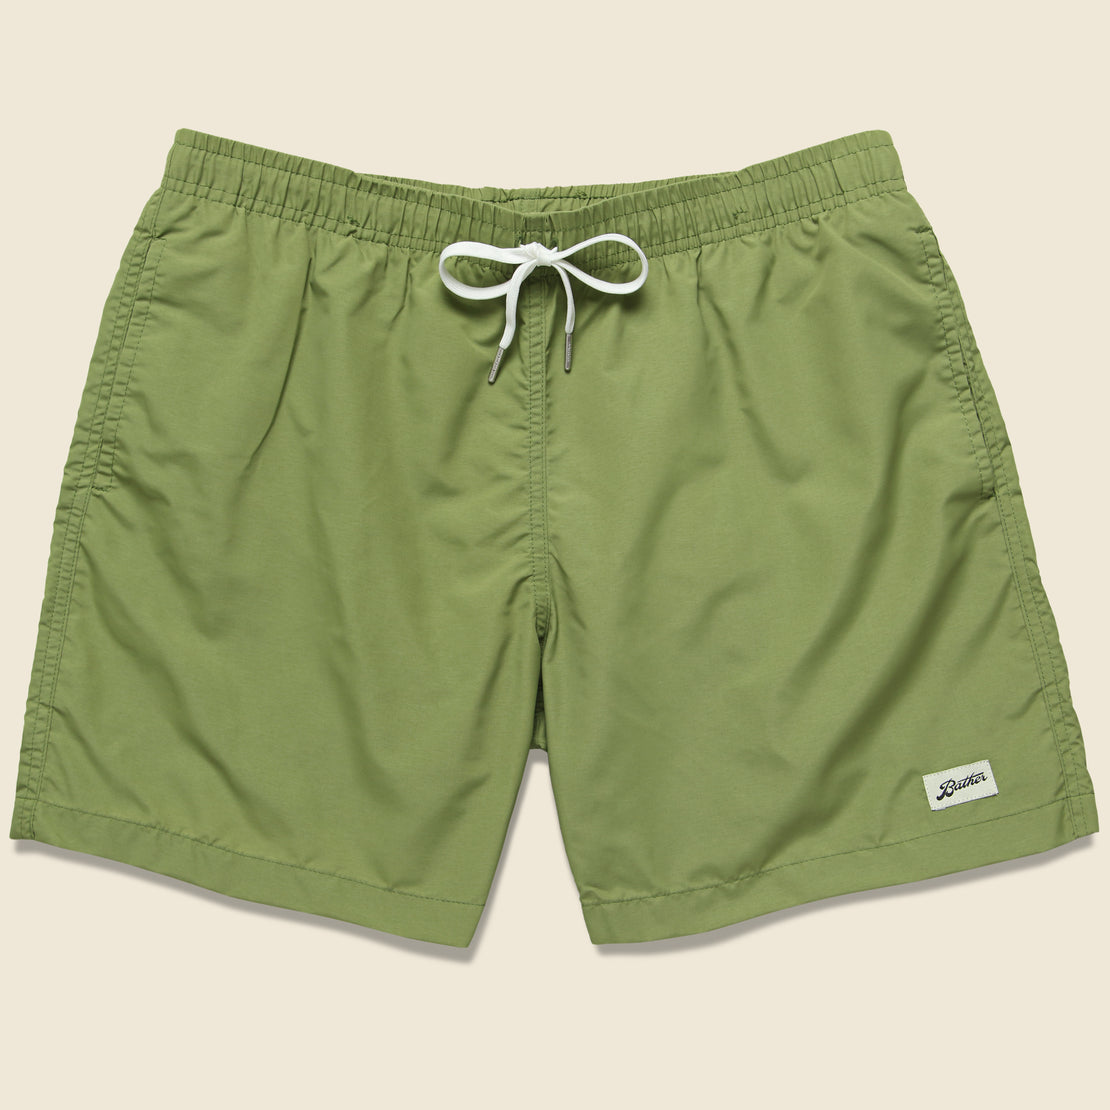 Bather Trunk Co. Solid Swim Trunk - Olive